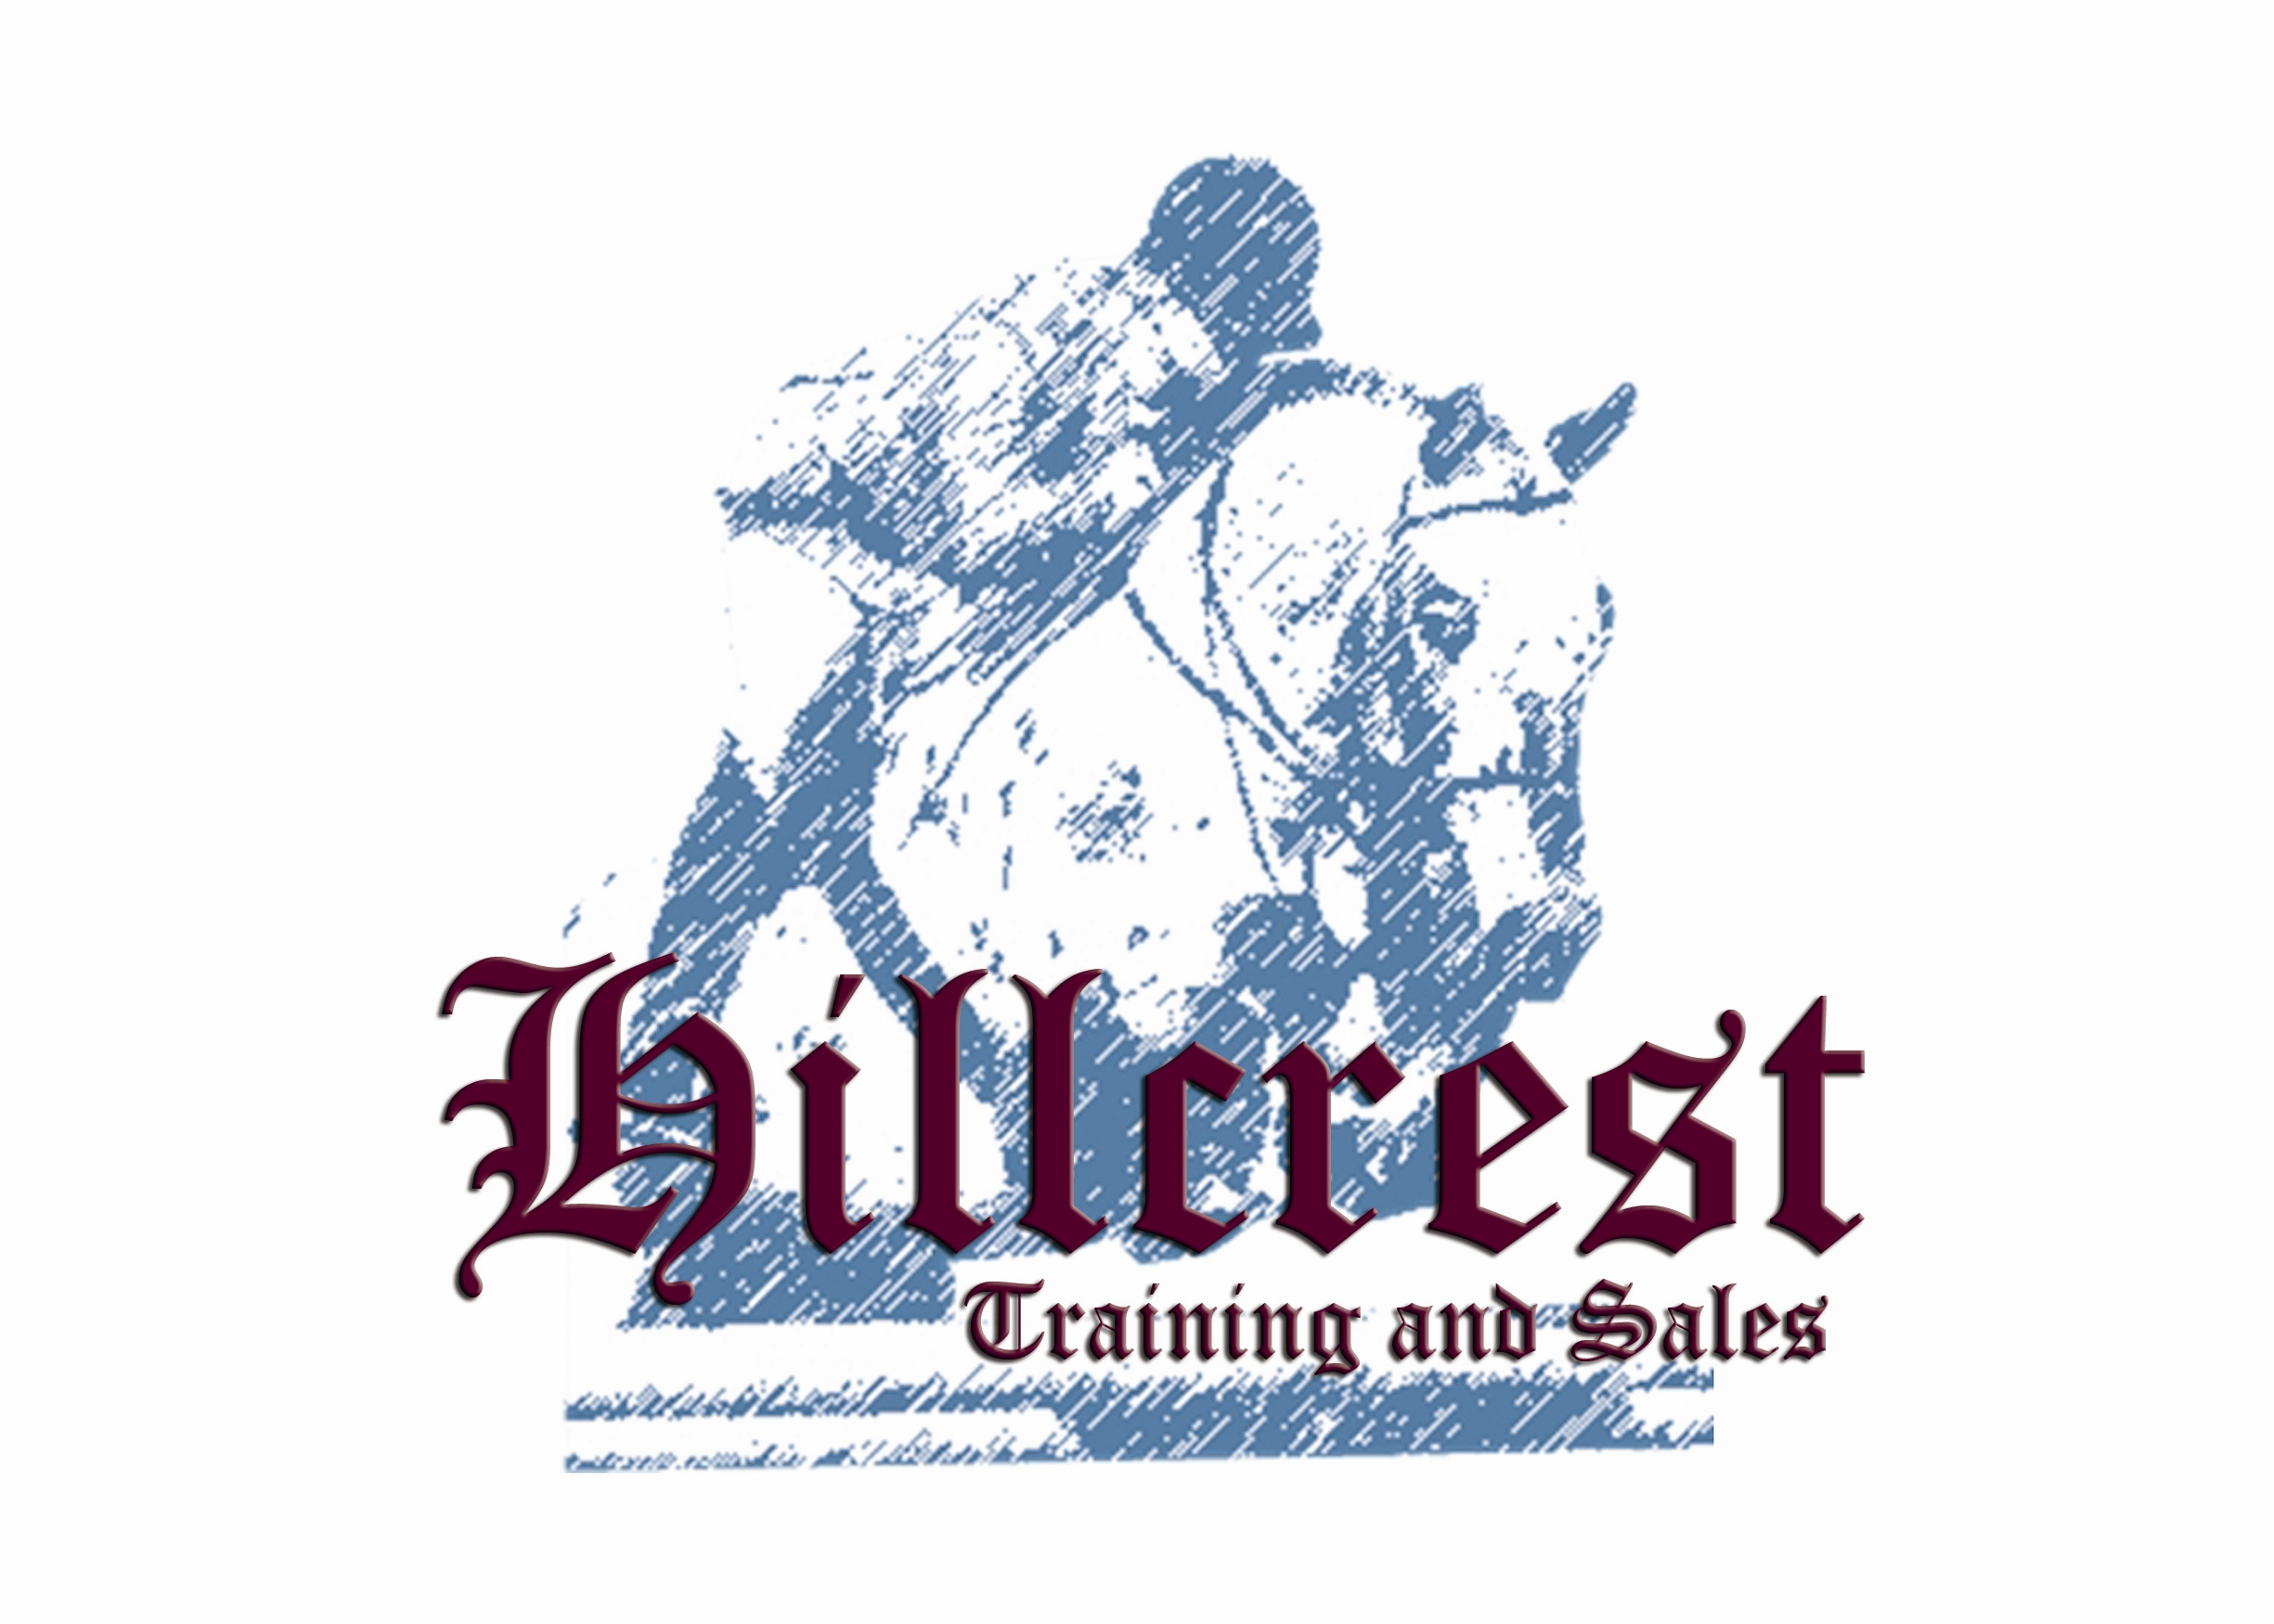 Riding Lessons at Hillcrest Training